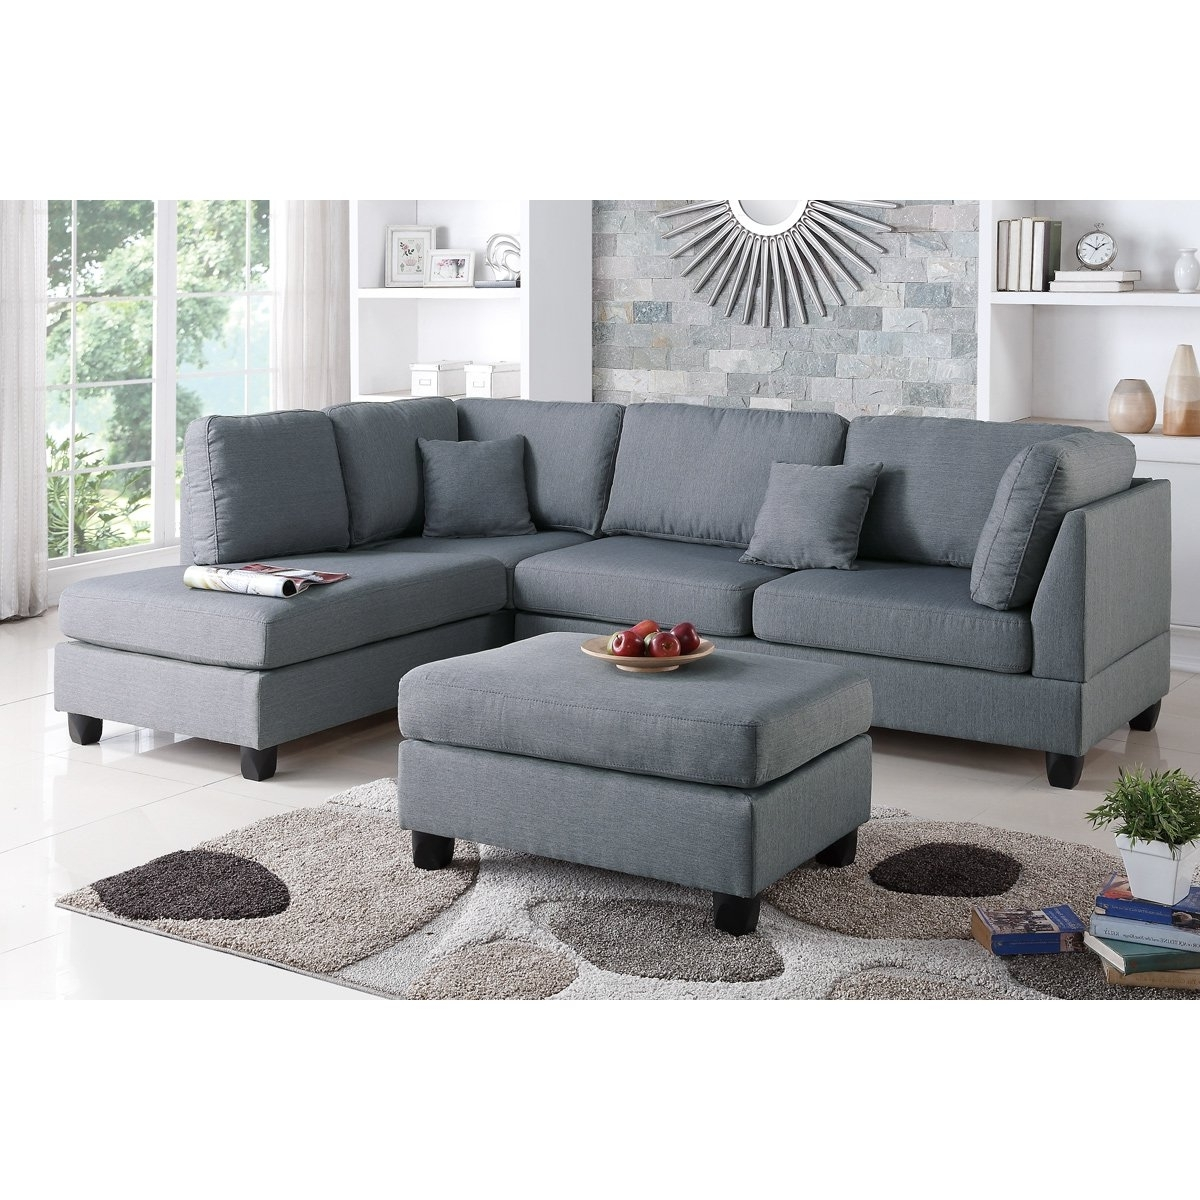 Fashionable Pottery Barn Chaises Within Furniture: Pottery Barn Buchanan Sectional (View 4 of 15)